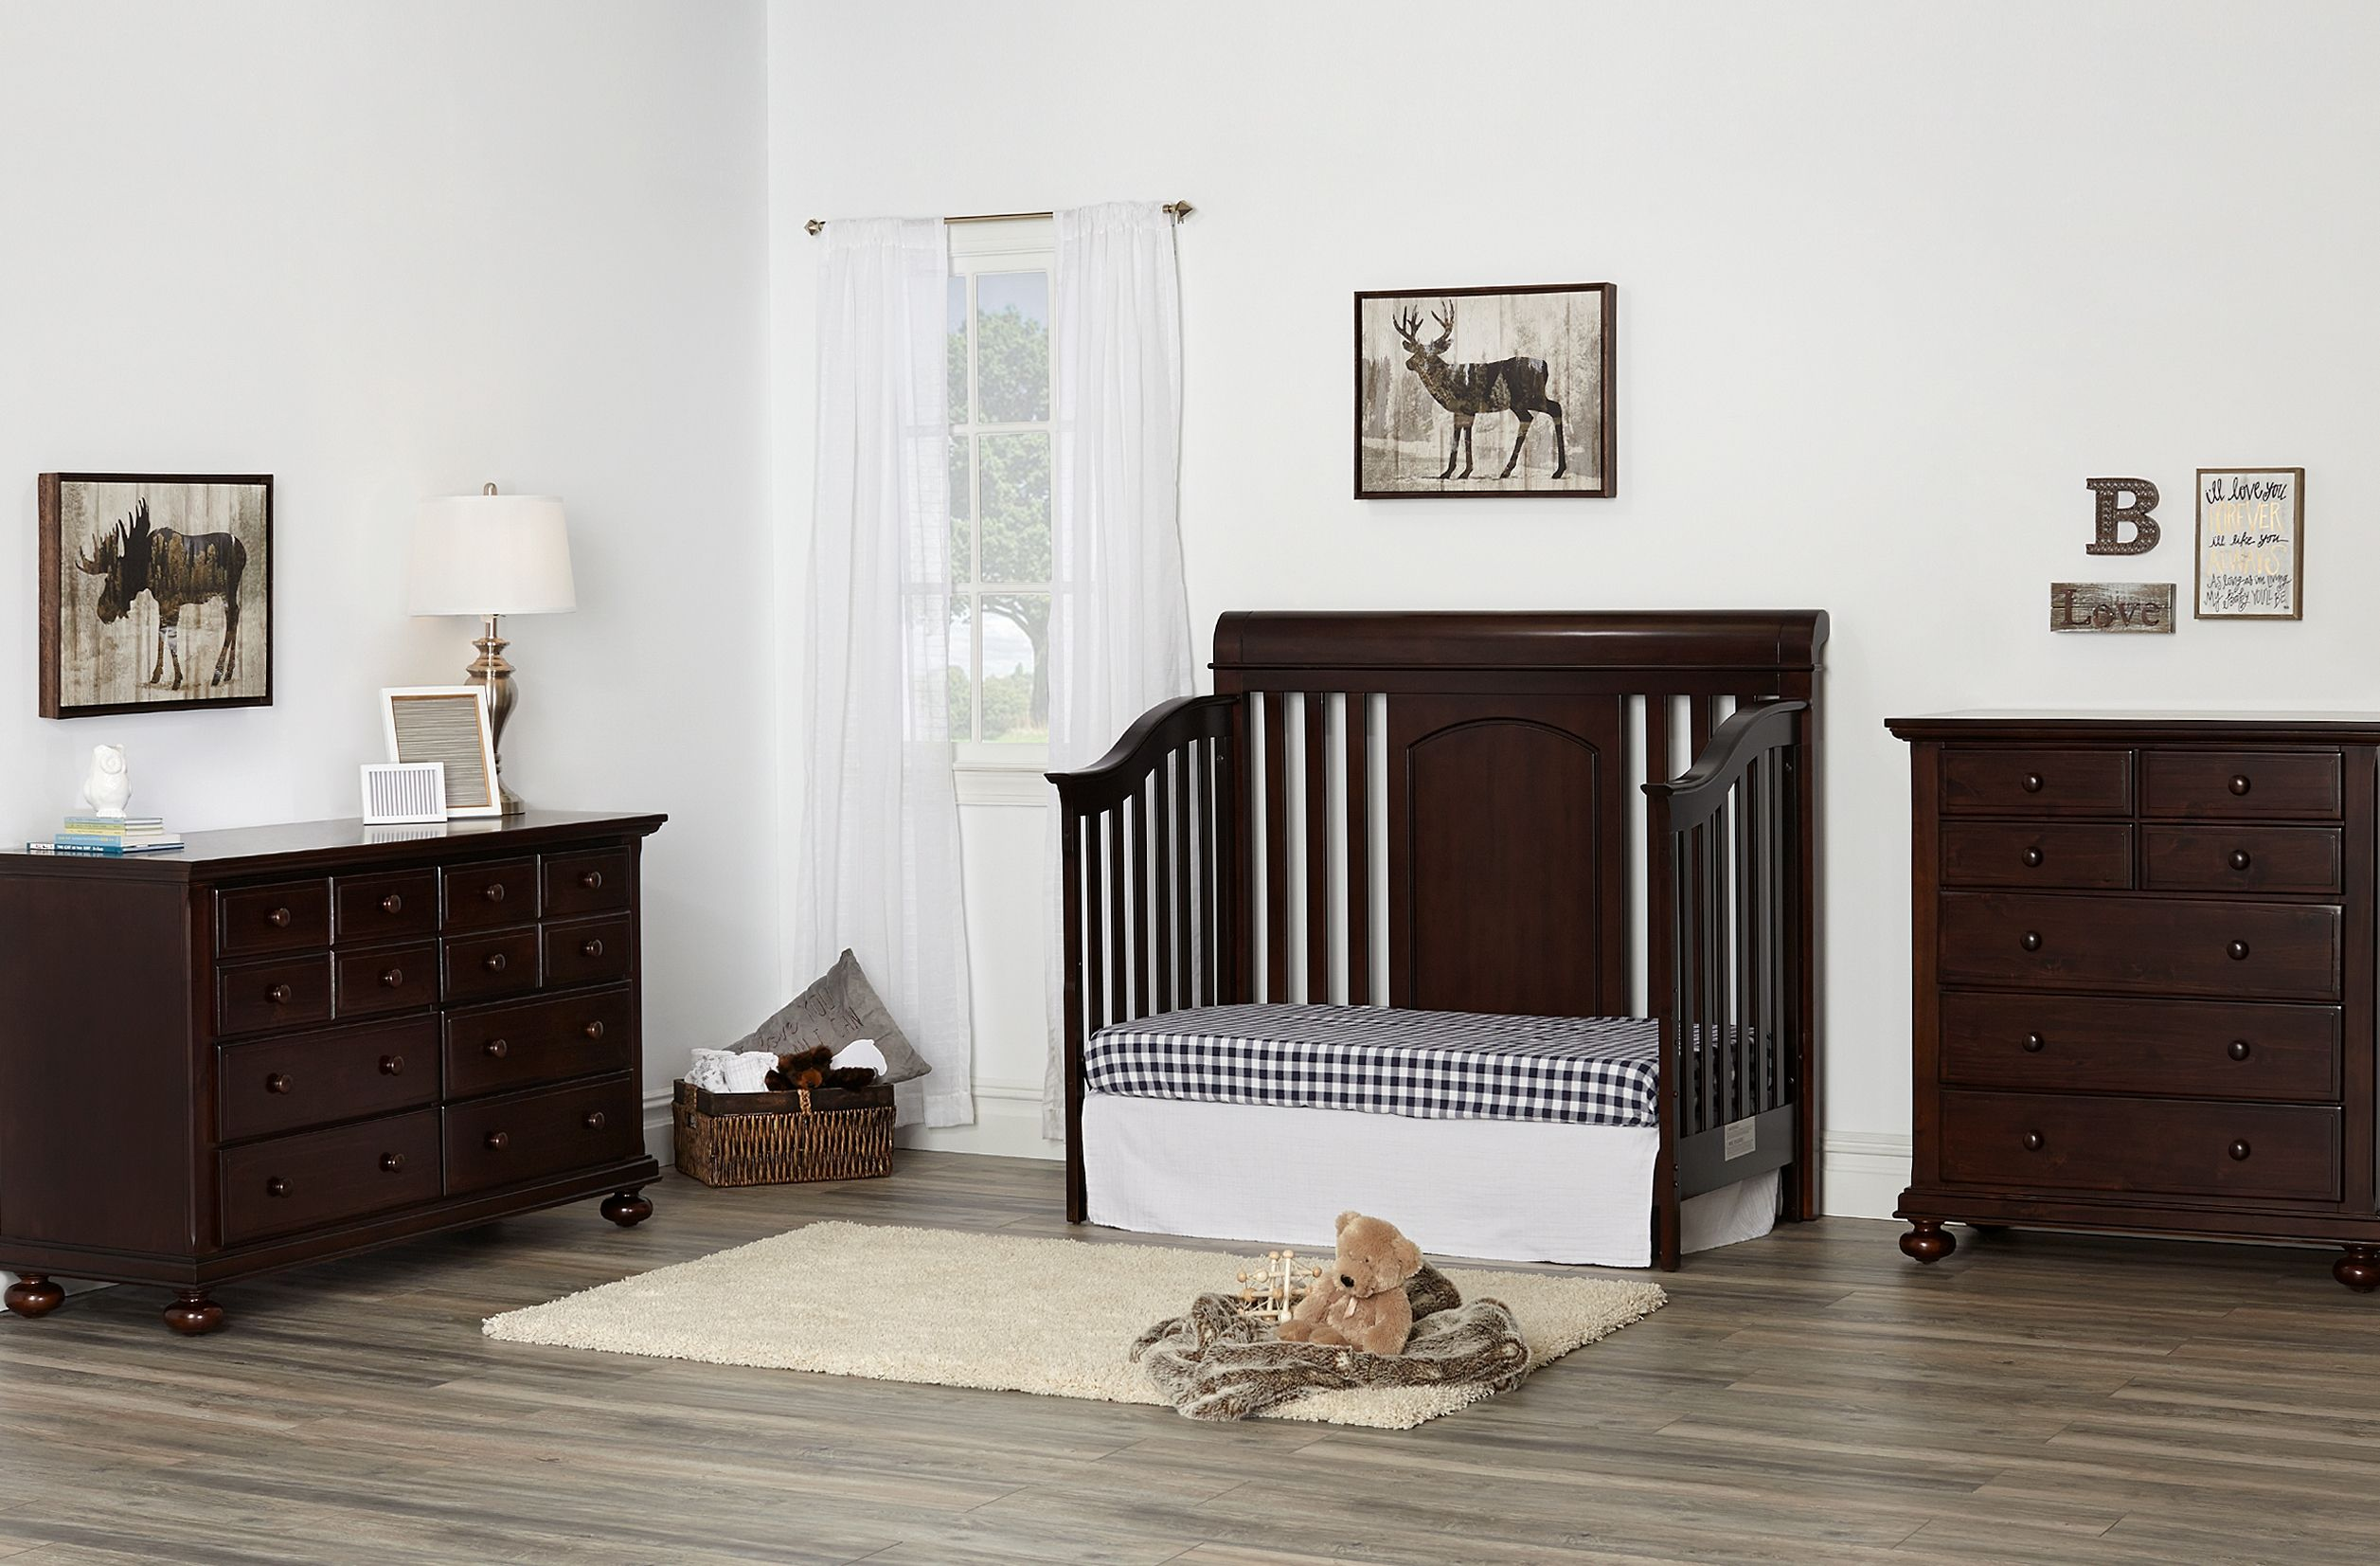 in cribs vinci crib da set davinci raw collection thompson mthompsonkitc cherry